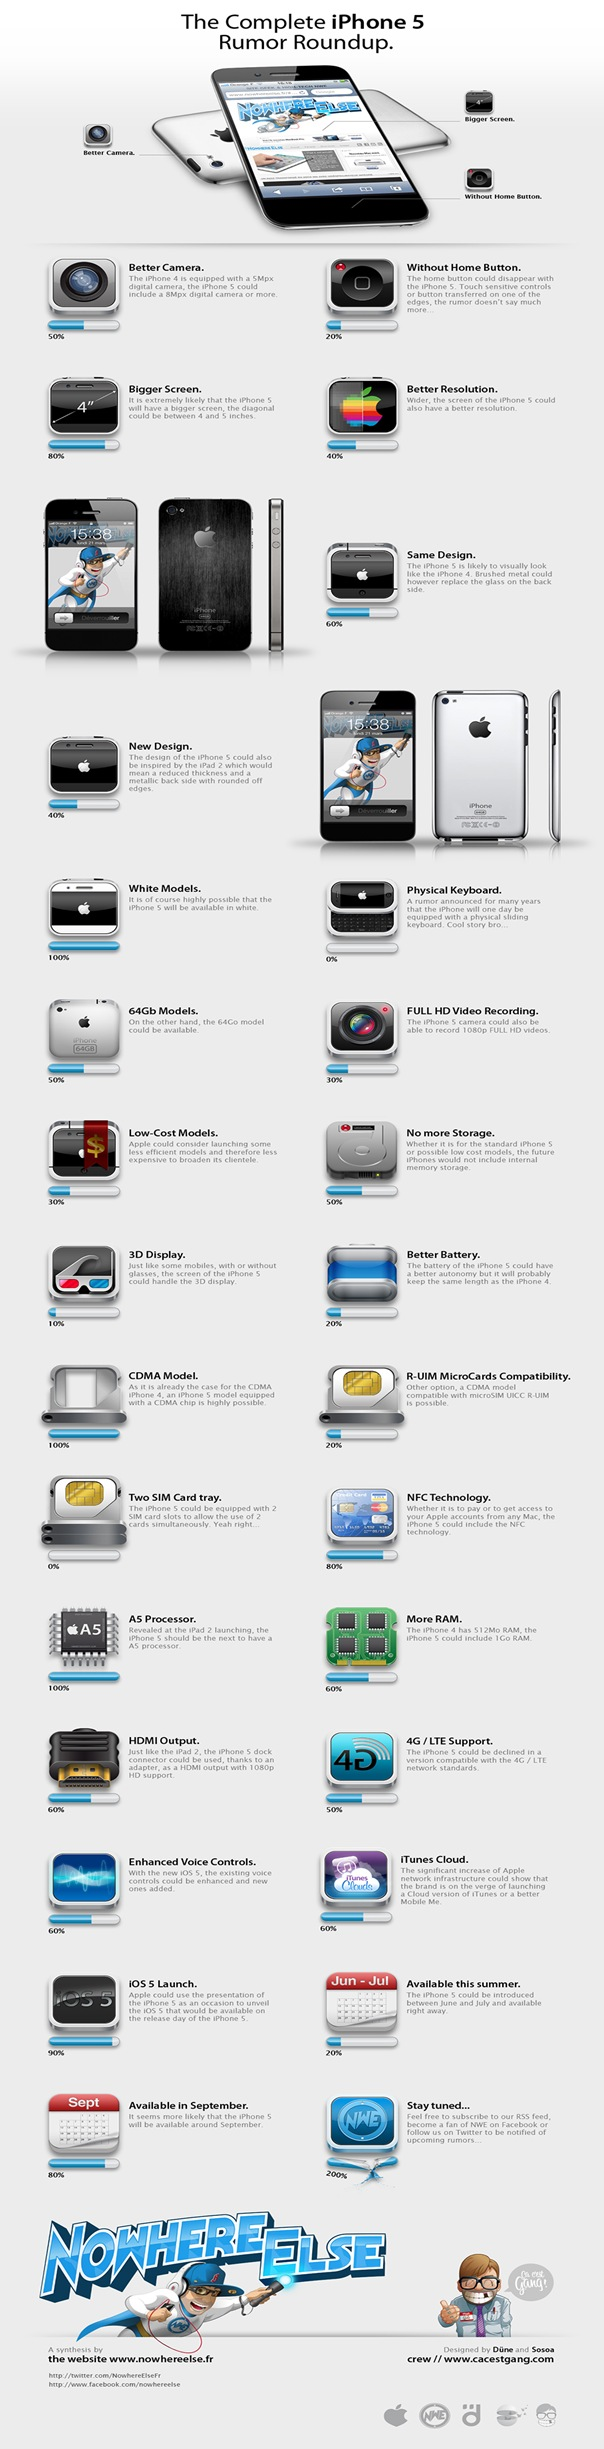 iphone 5 features iphone 5 iphon5 rumors